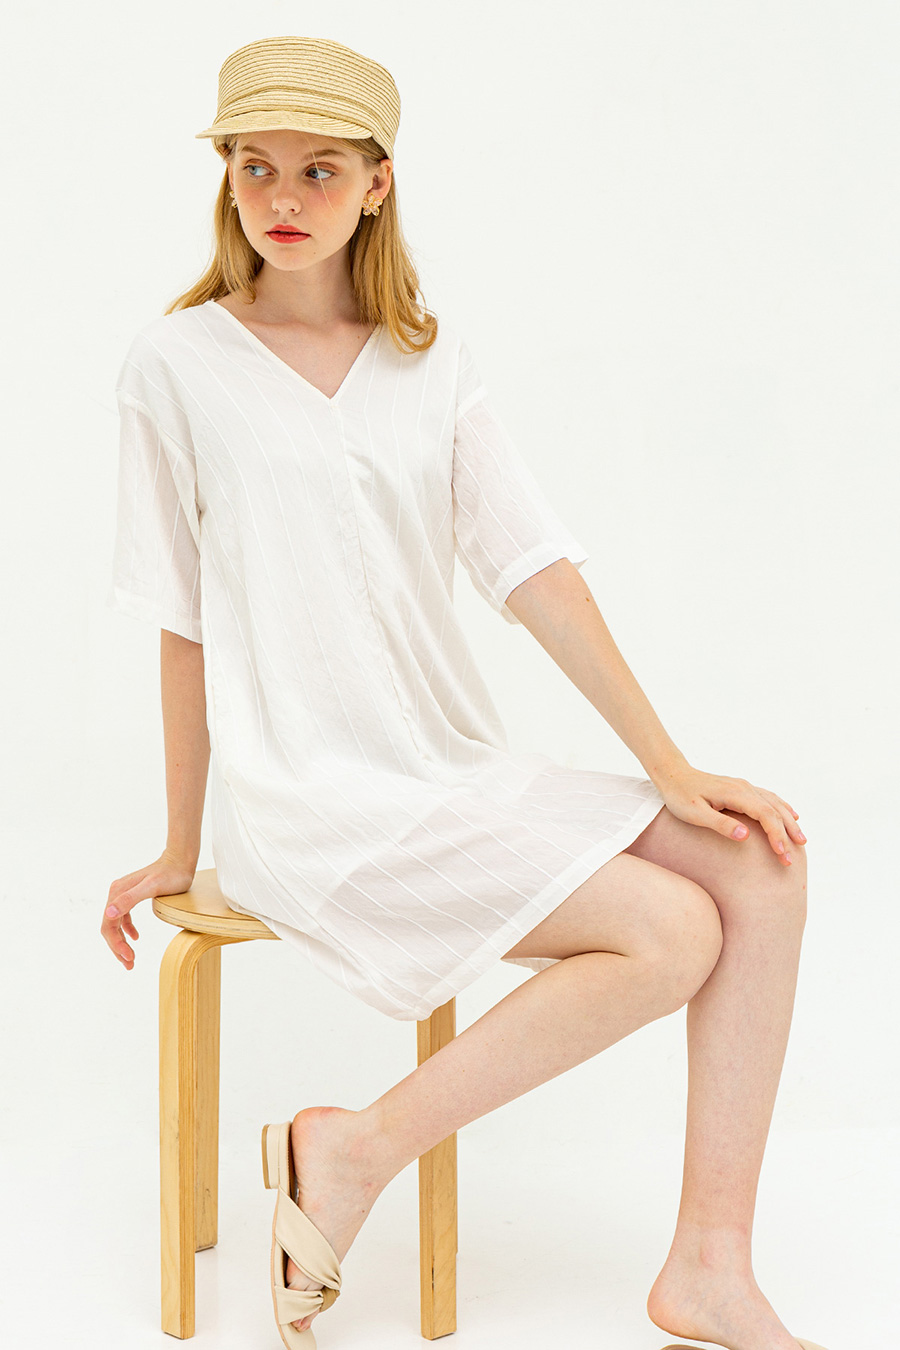 JOLANTA DRESS - BLANC STRIPE [BY MODPARADE]